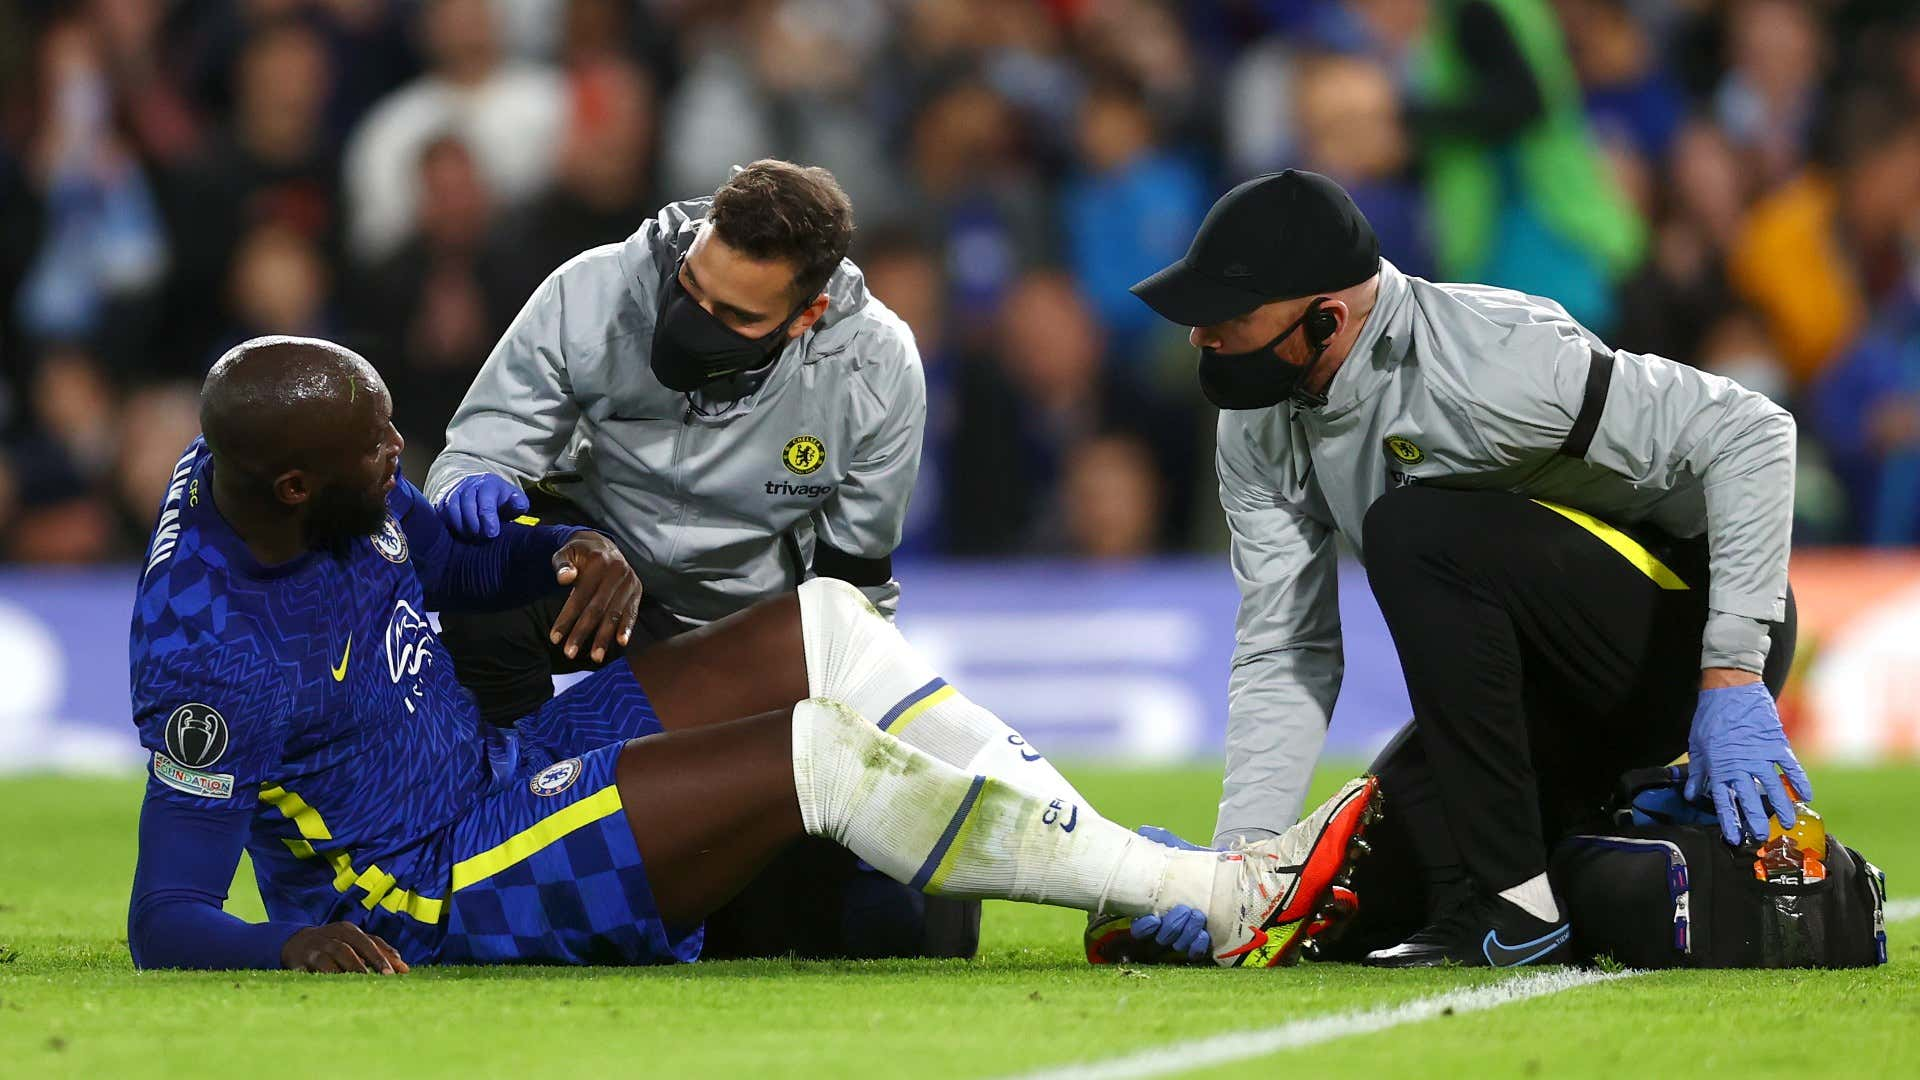 Chelsea suffer injury nightmare as Lukaku and Werner forced off in first half against Malmo | Goal.com